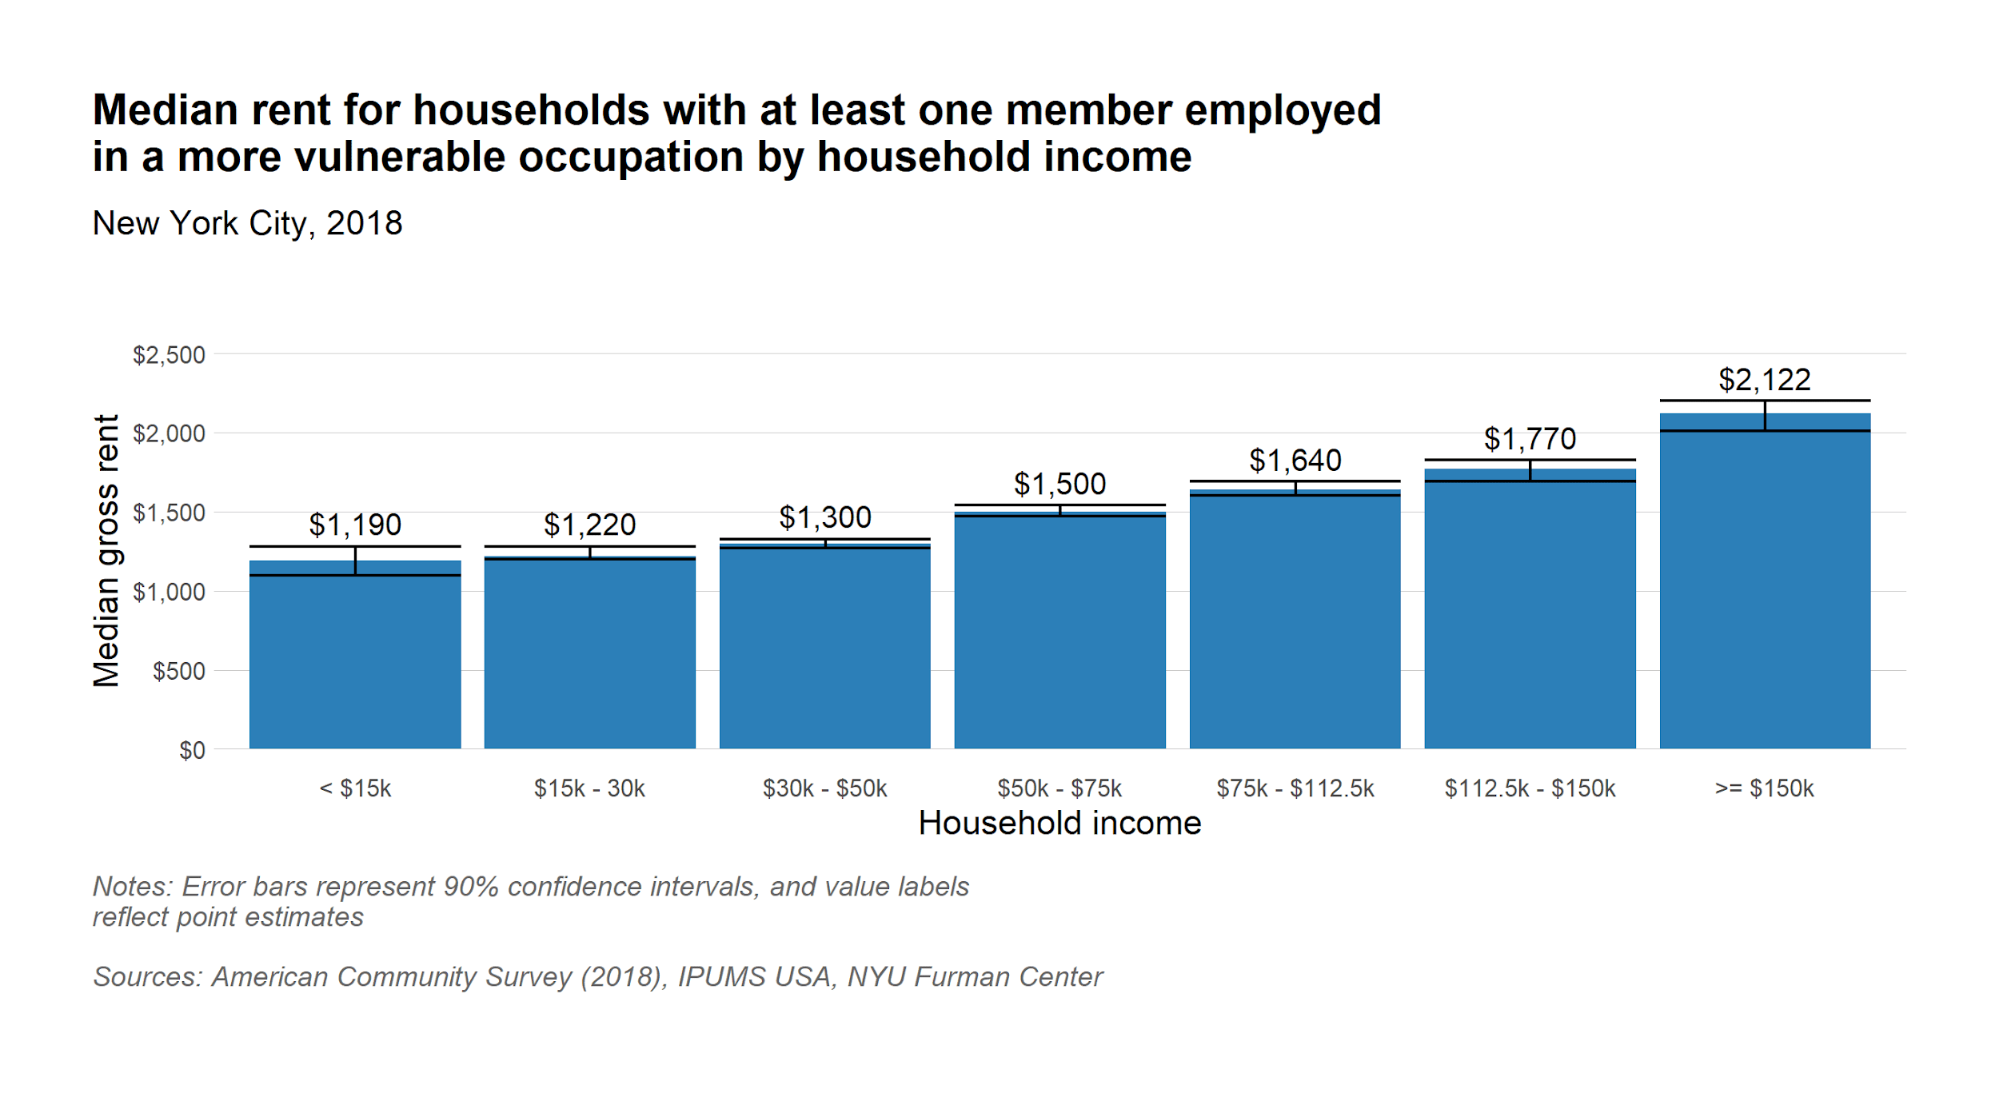 Median rent for households with at least one member in a vulnerable occupation